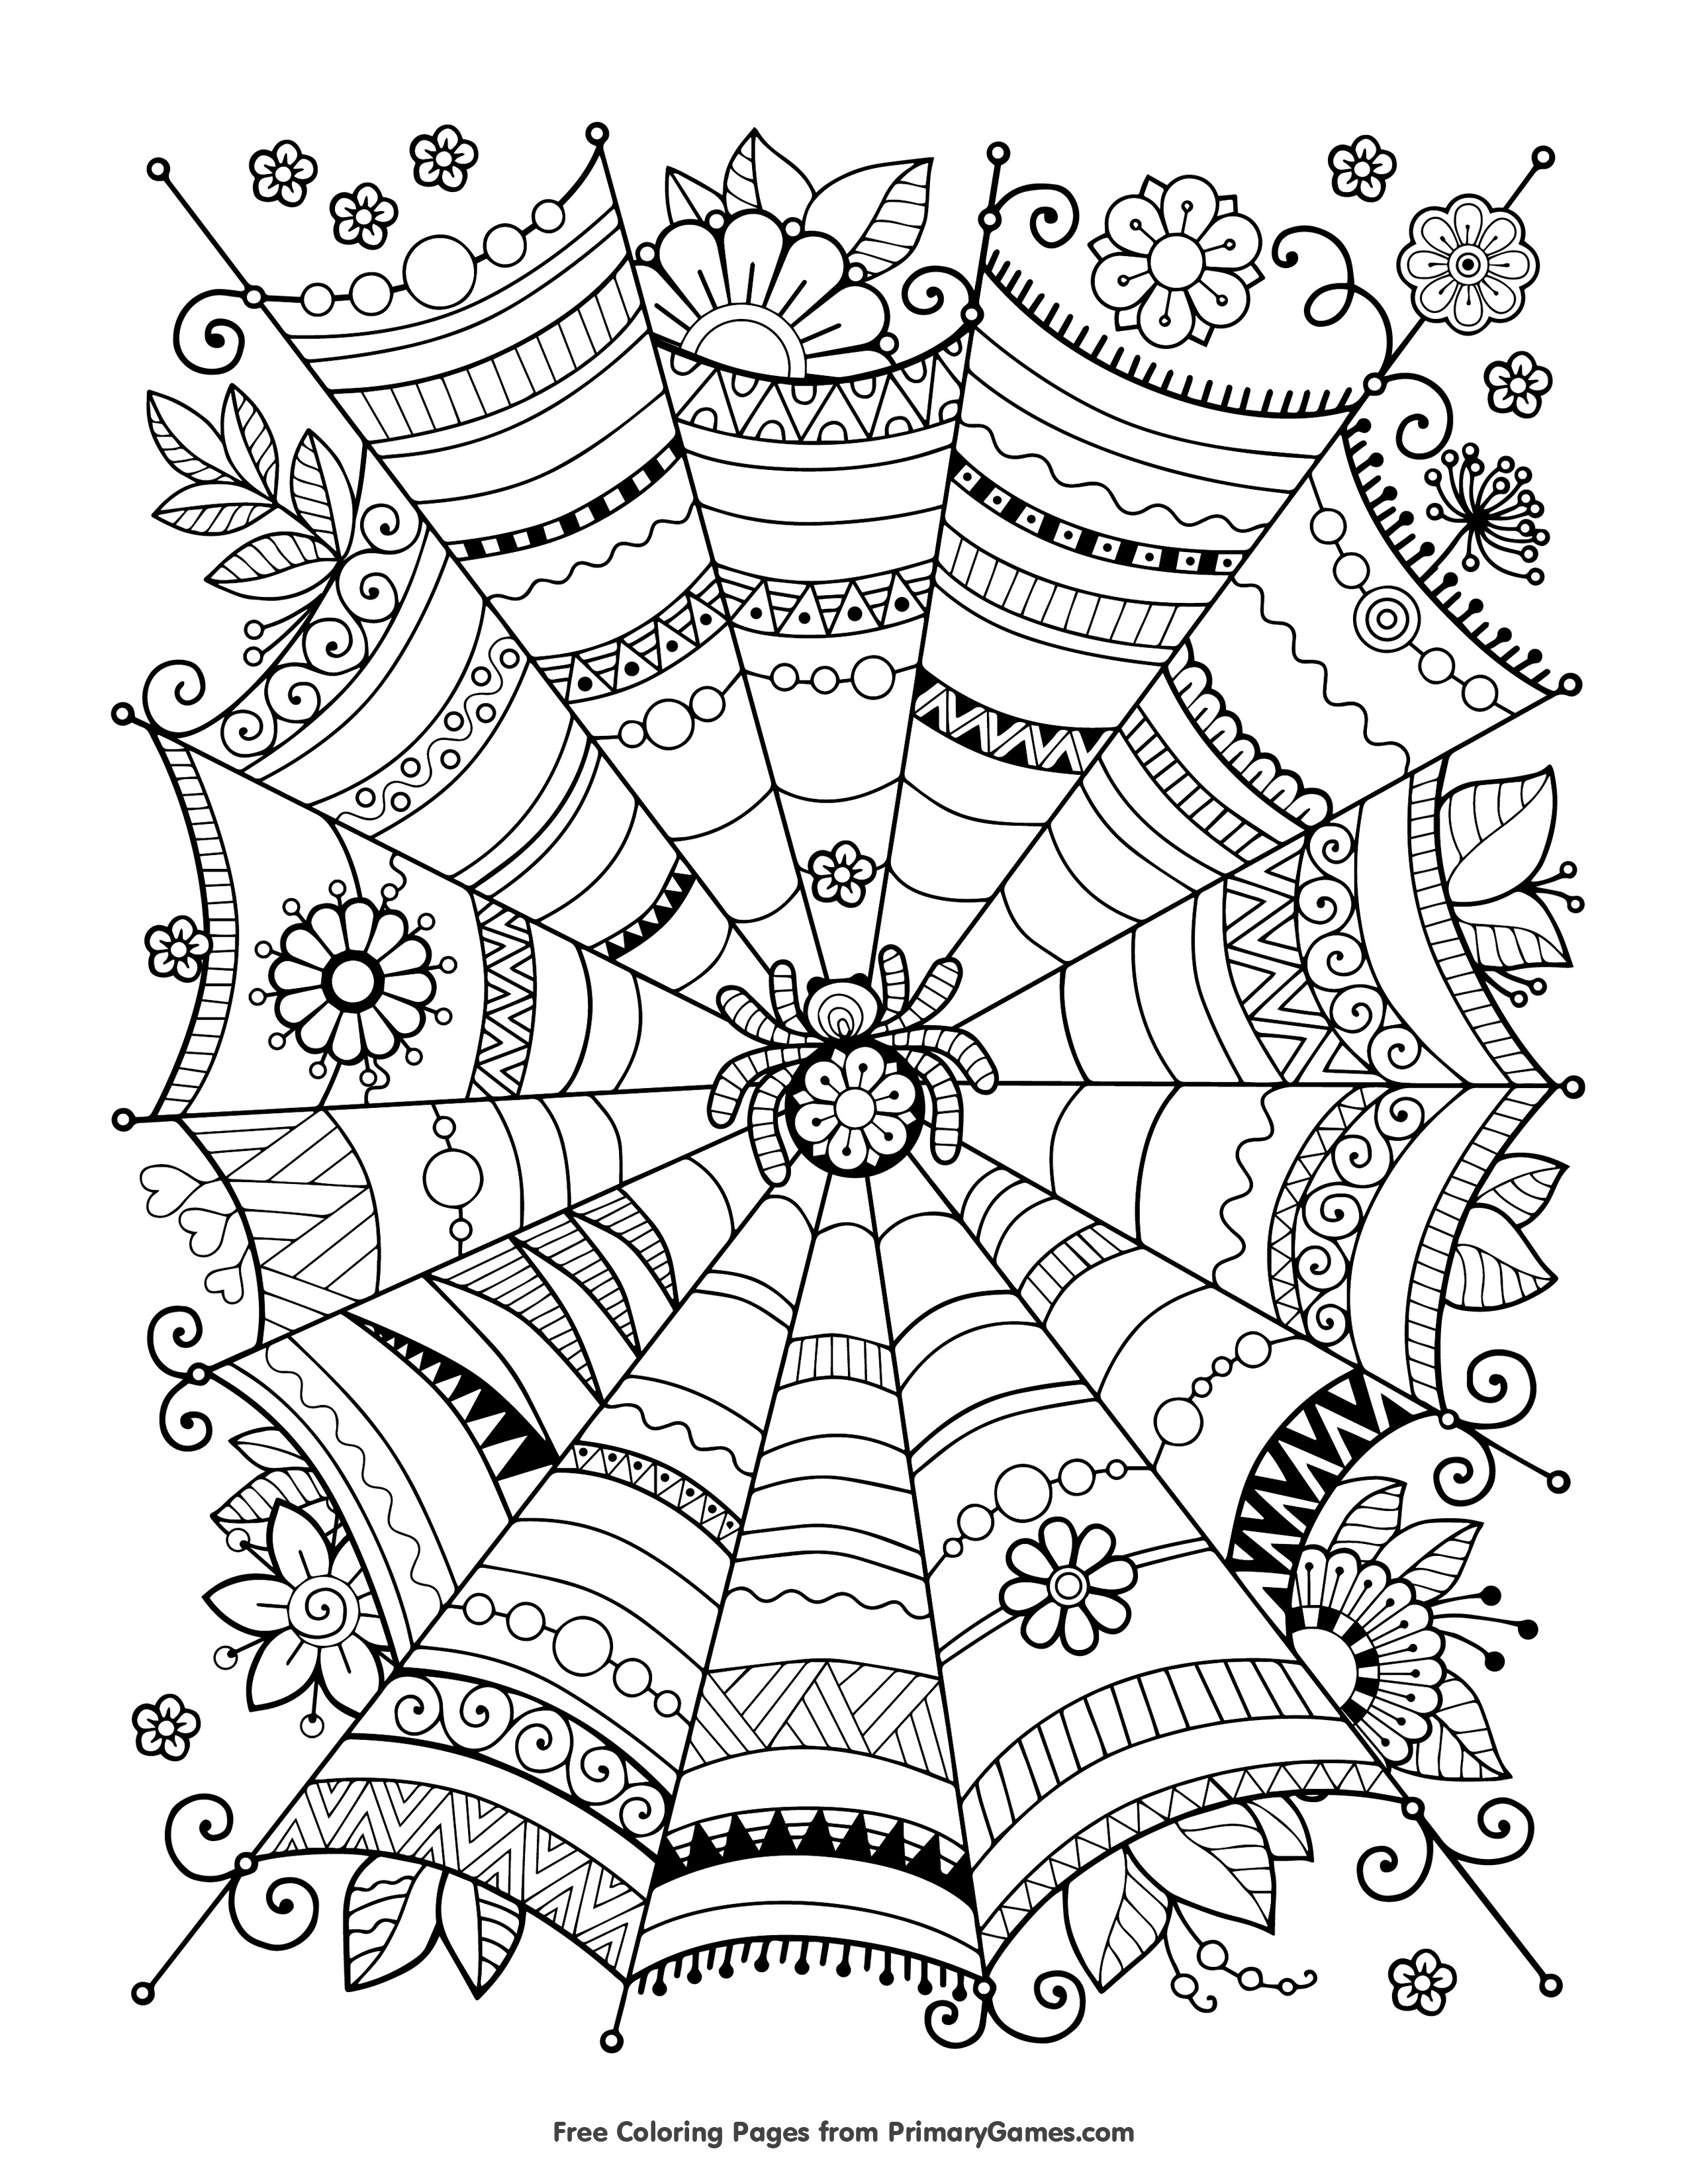 Free Halloween Coloring Pages For Adults & Kids - Happiness Is Homemade - Free Coloring Pages Com Printable